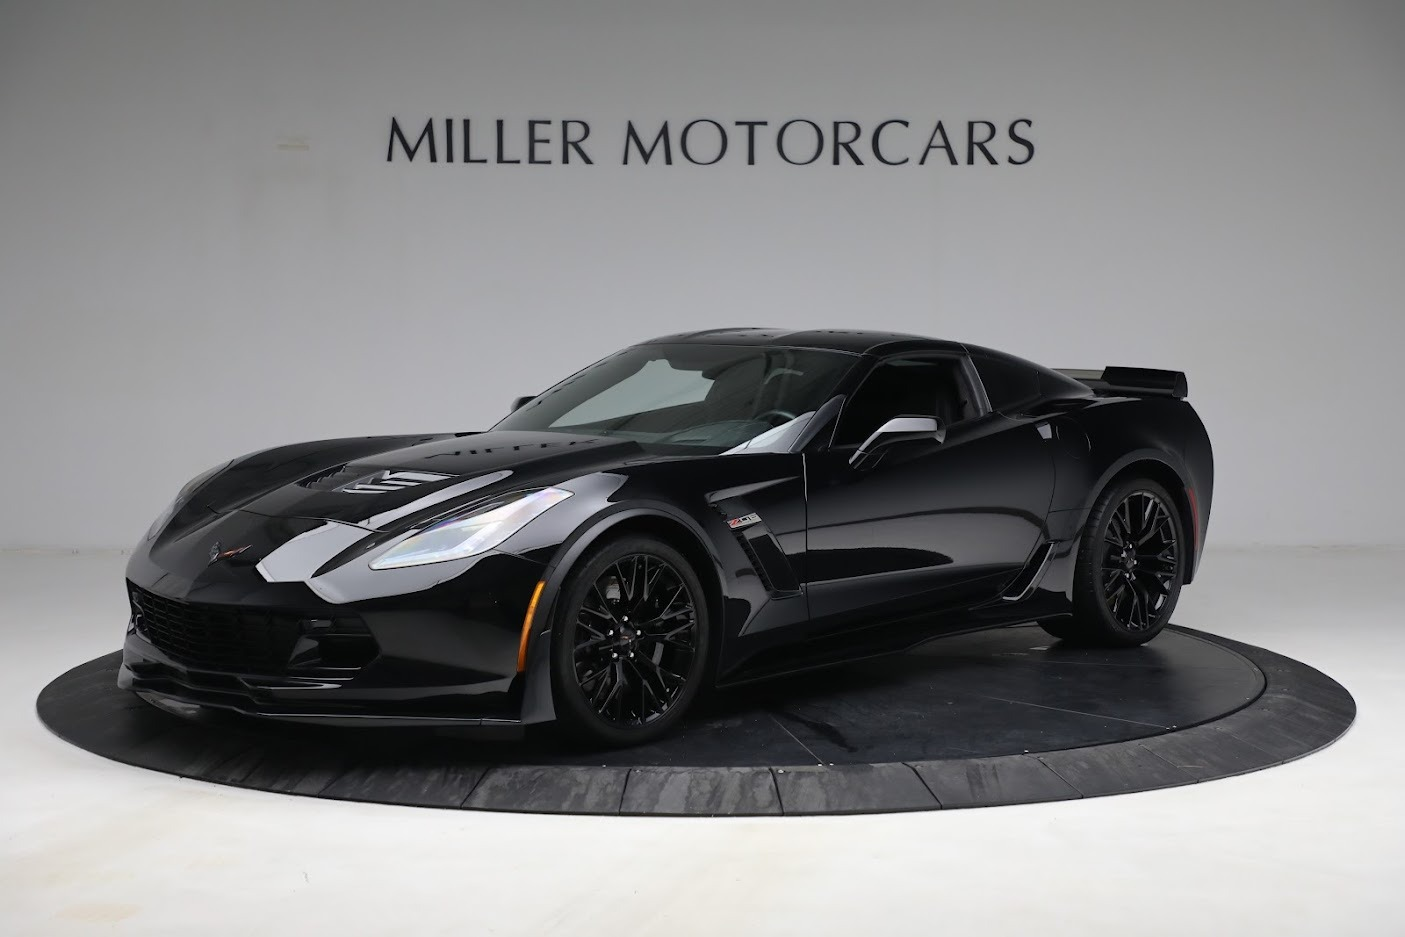 Used 2016 Chevrolet Corvette Z06 for sale $85,900 at Aston Martin of Greenwich in Greenwich CT 06830 1